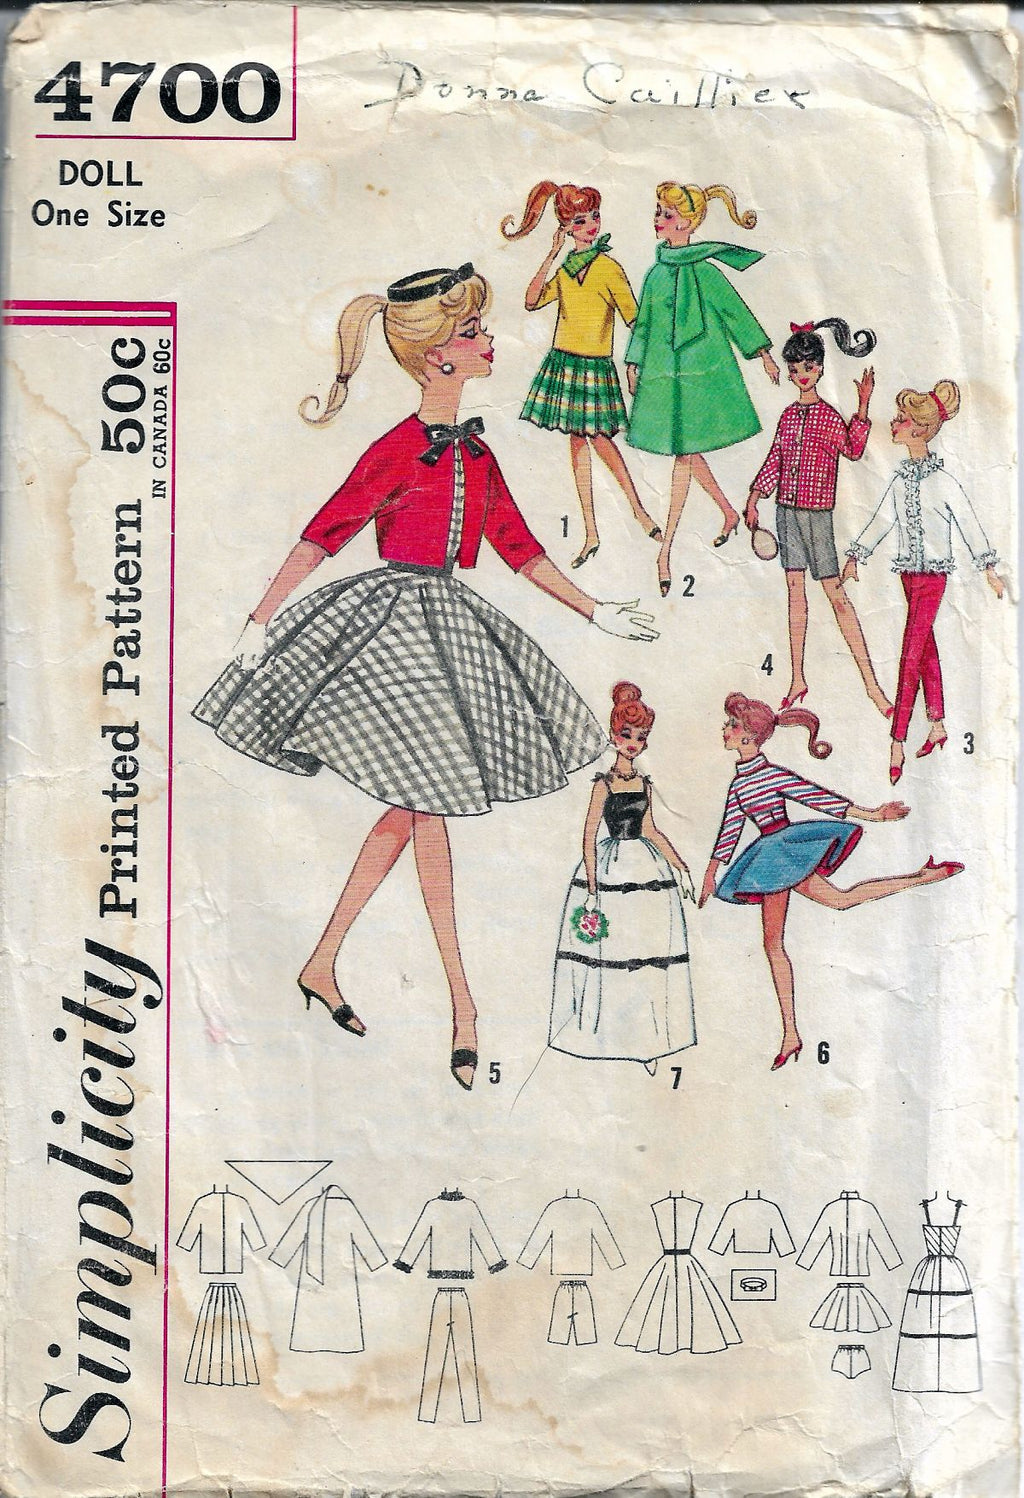 Simplicity 4700 Barbie Doll Clothes Dress Jacket Vintage 1960's Sewing Pattern - VintageStitching - Vintage Sewing Patterns